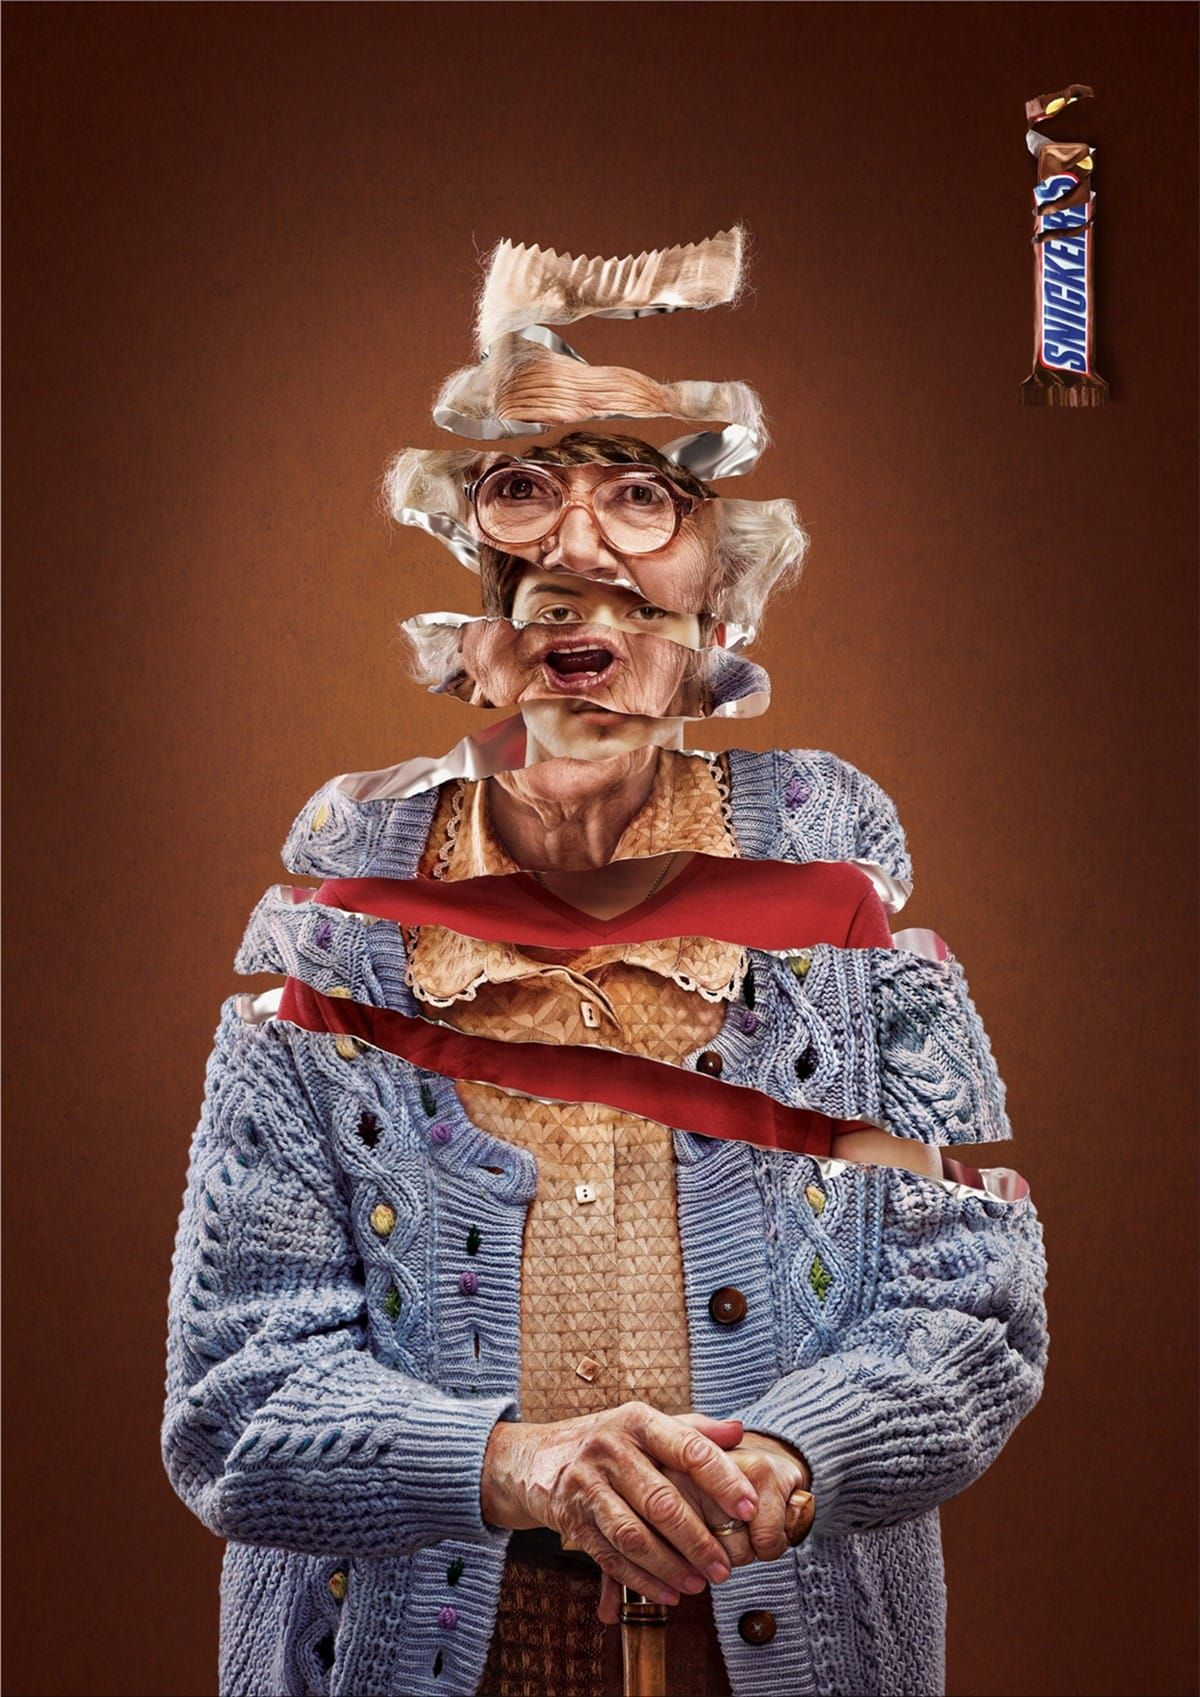 Snickers Mad Scientist Amp Grandmother Amp Apeman Snickers Ads